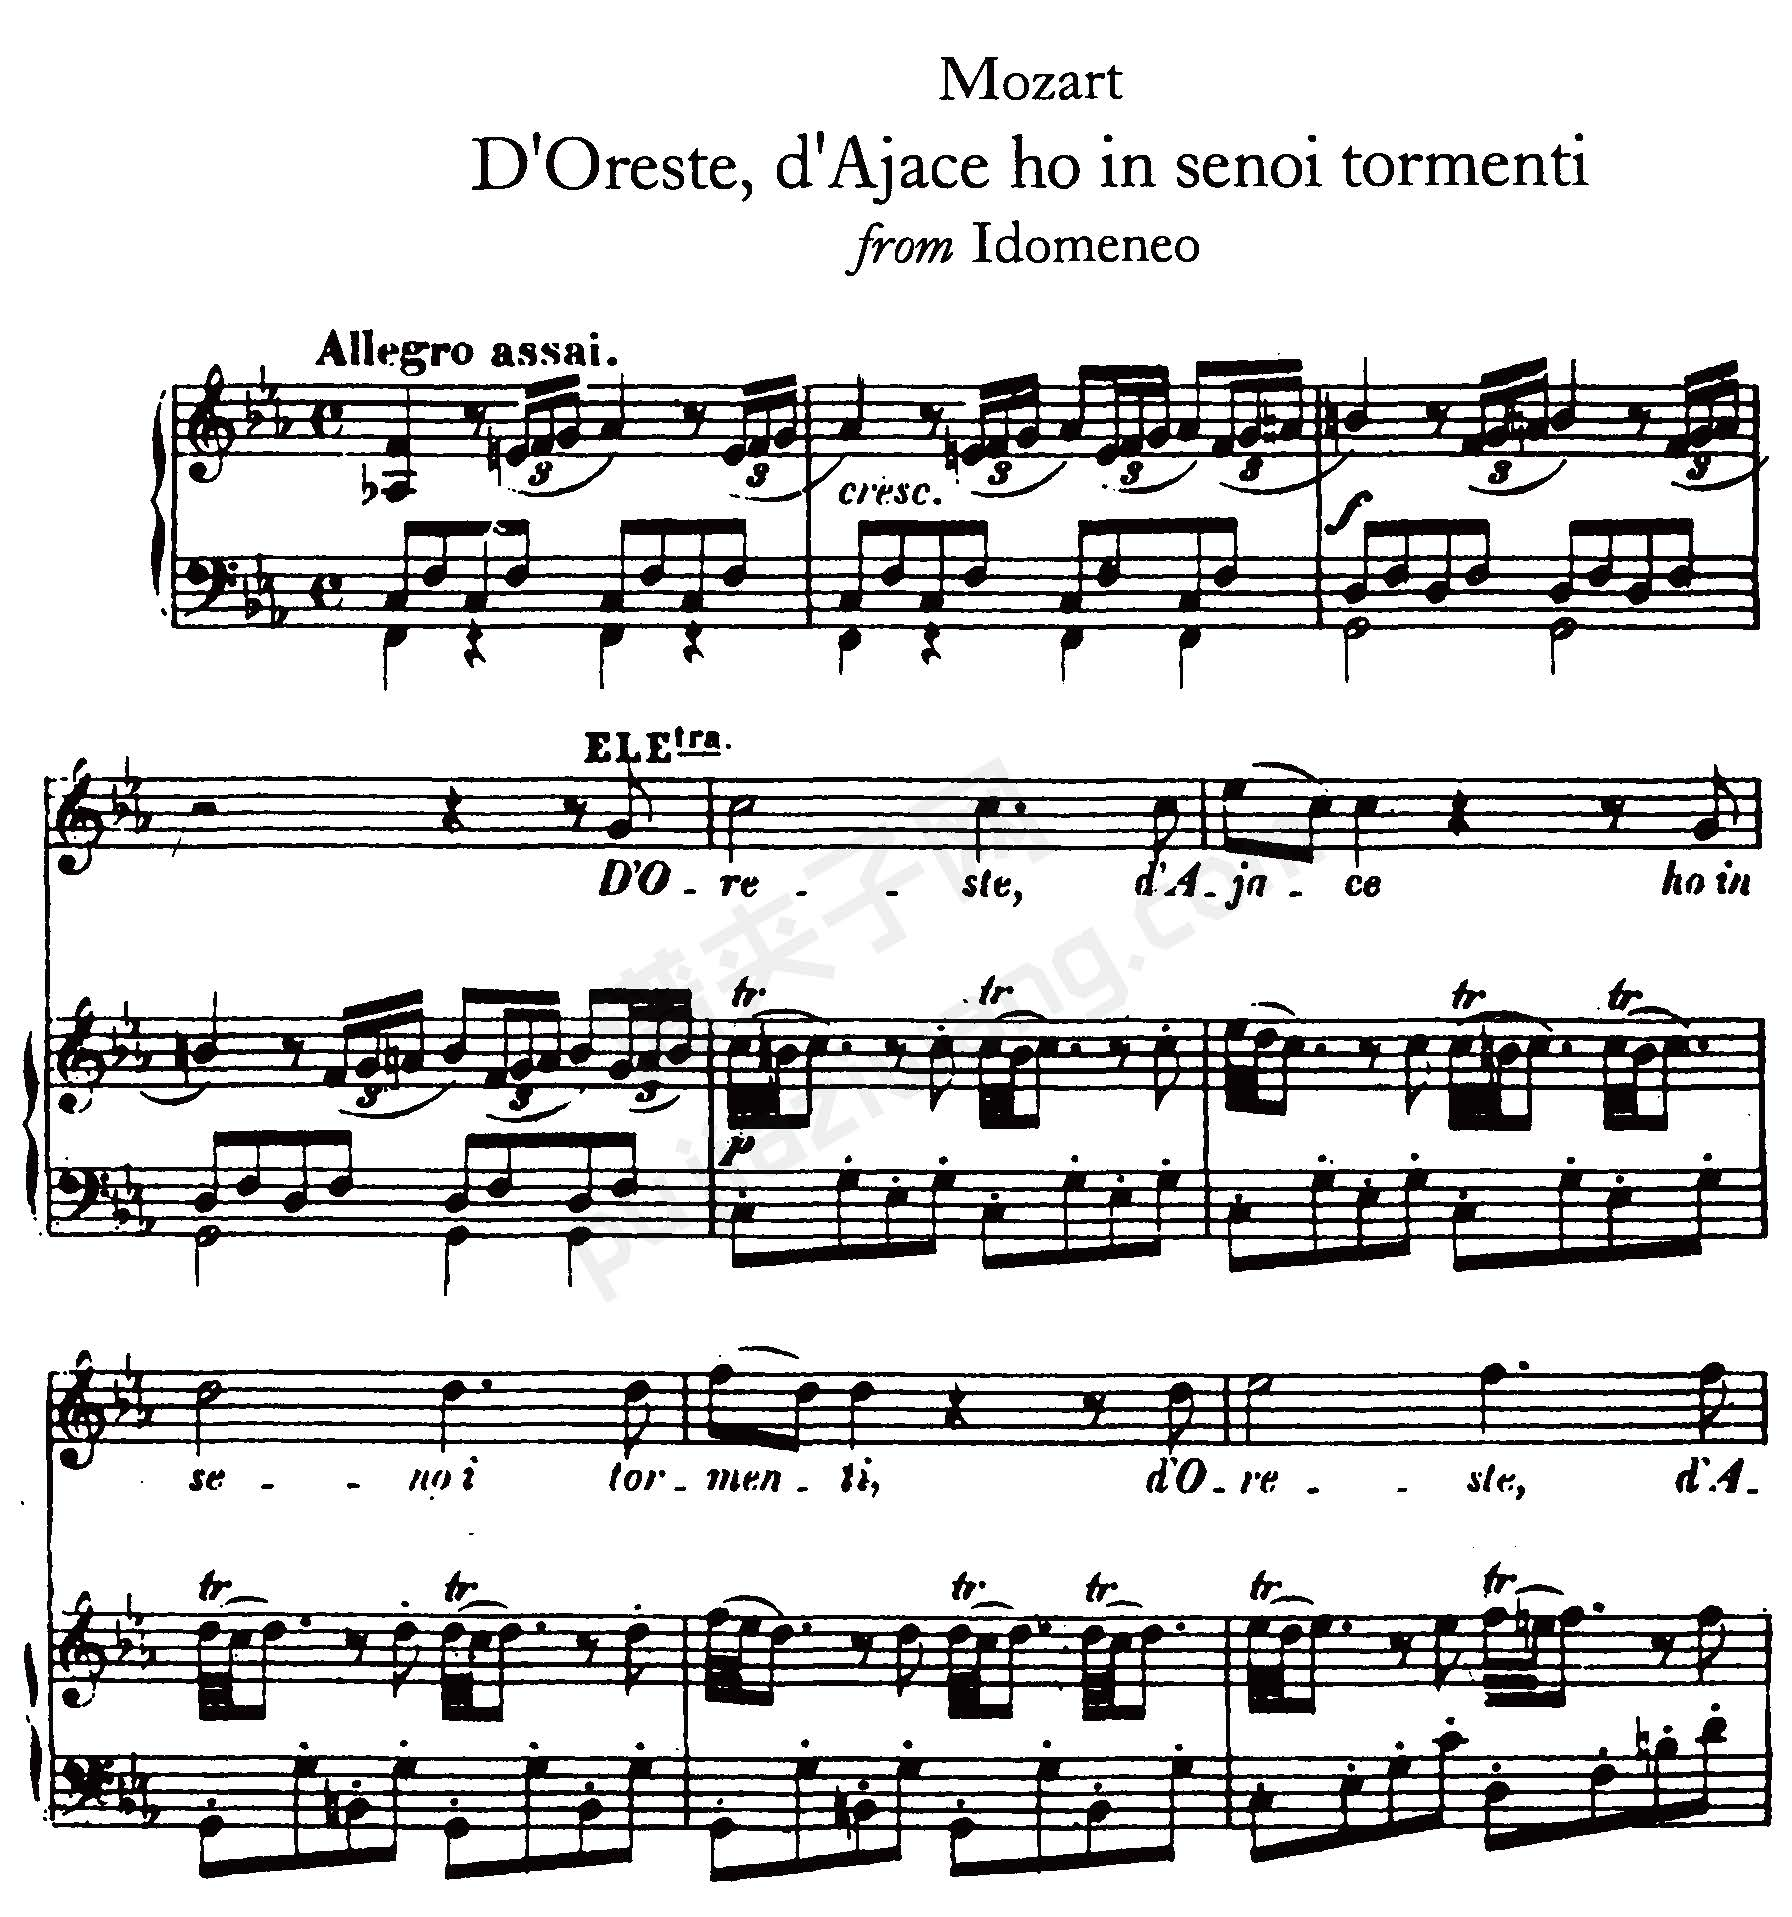 Pages from D'oreste, d'aiace ho in seno I tormenti.jpg